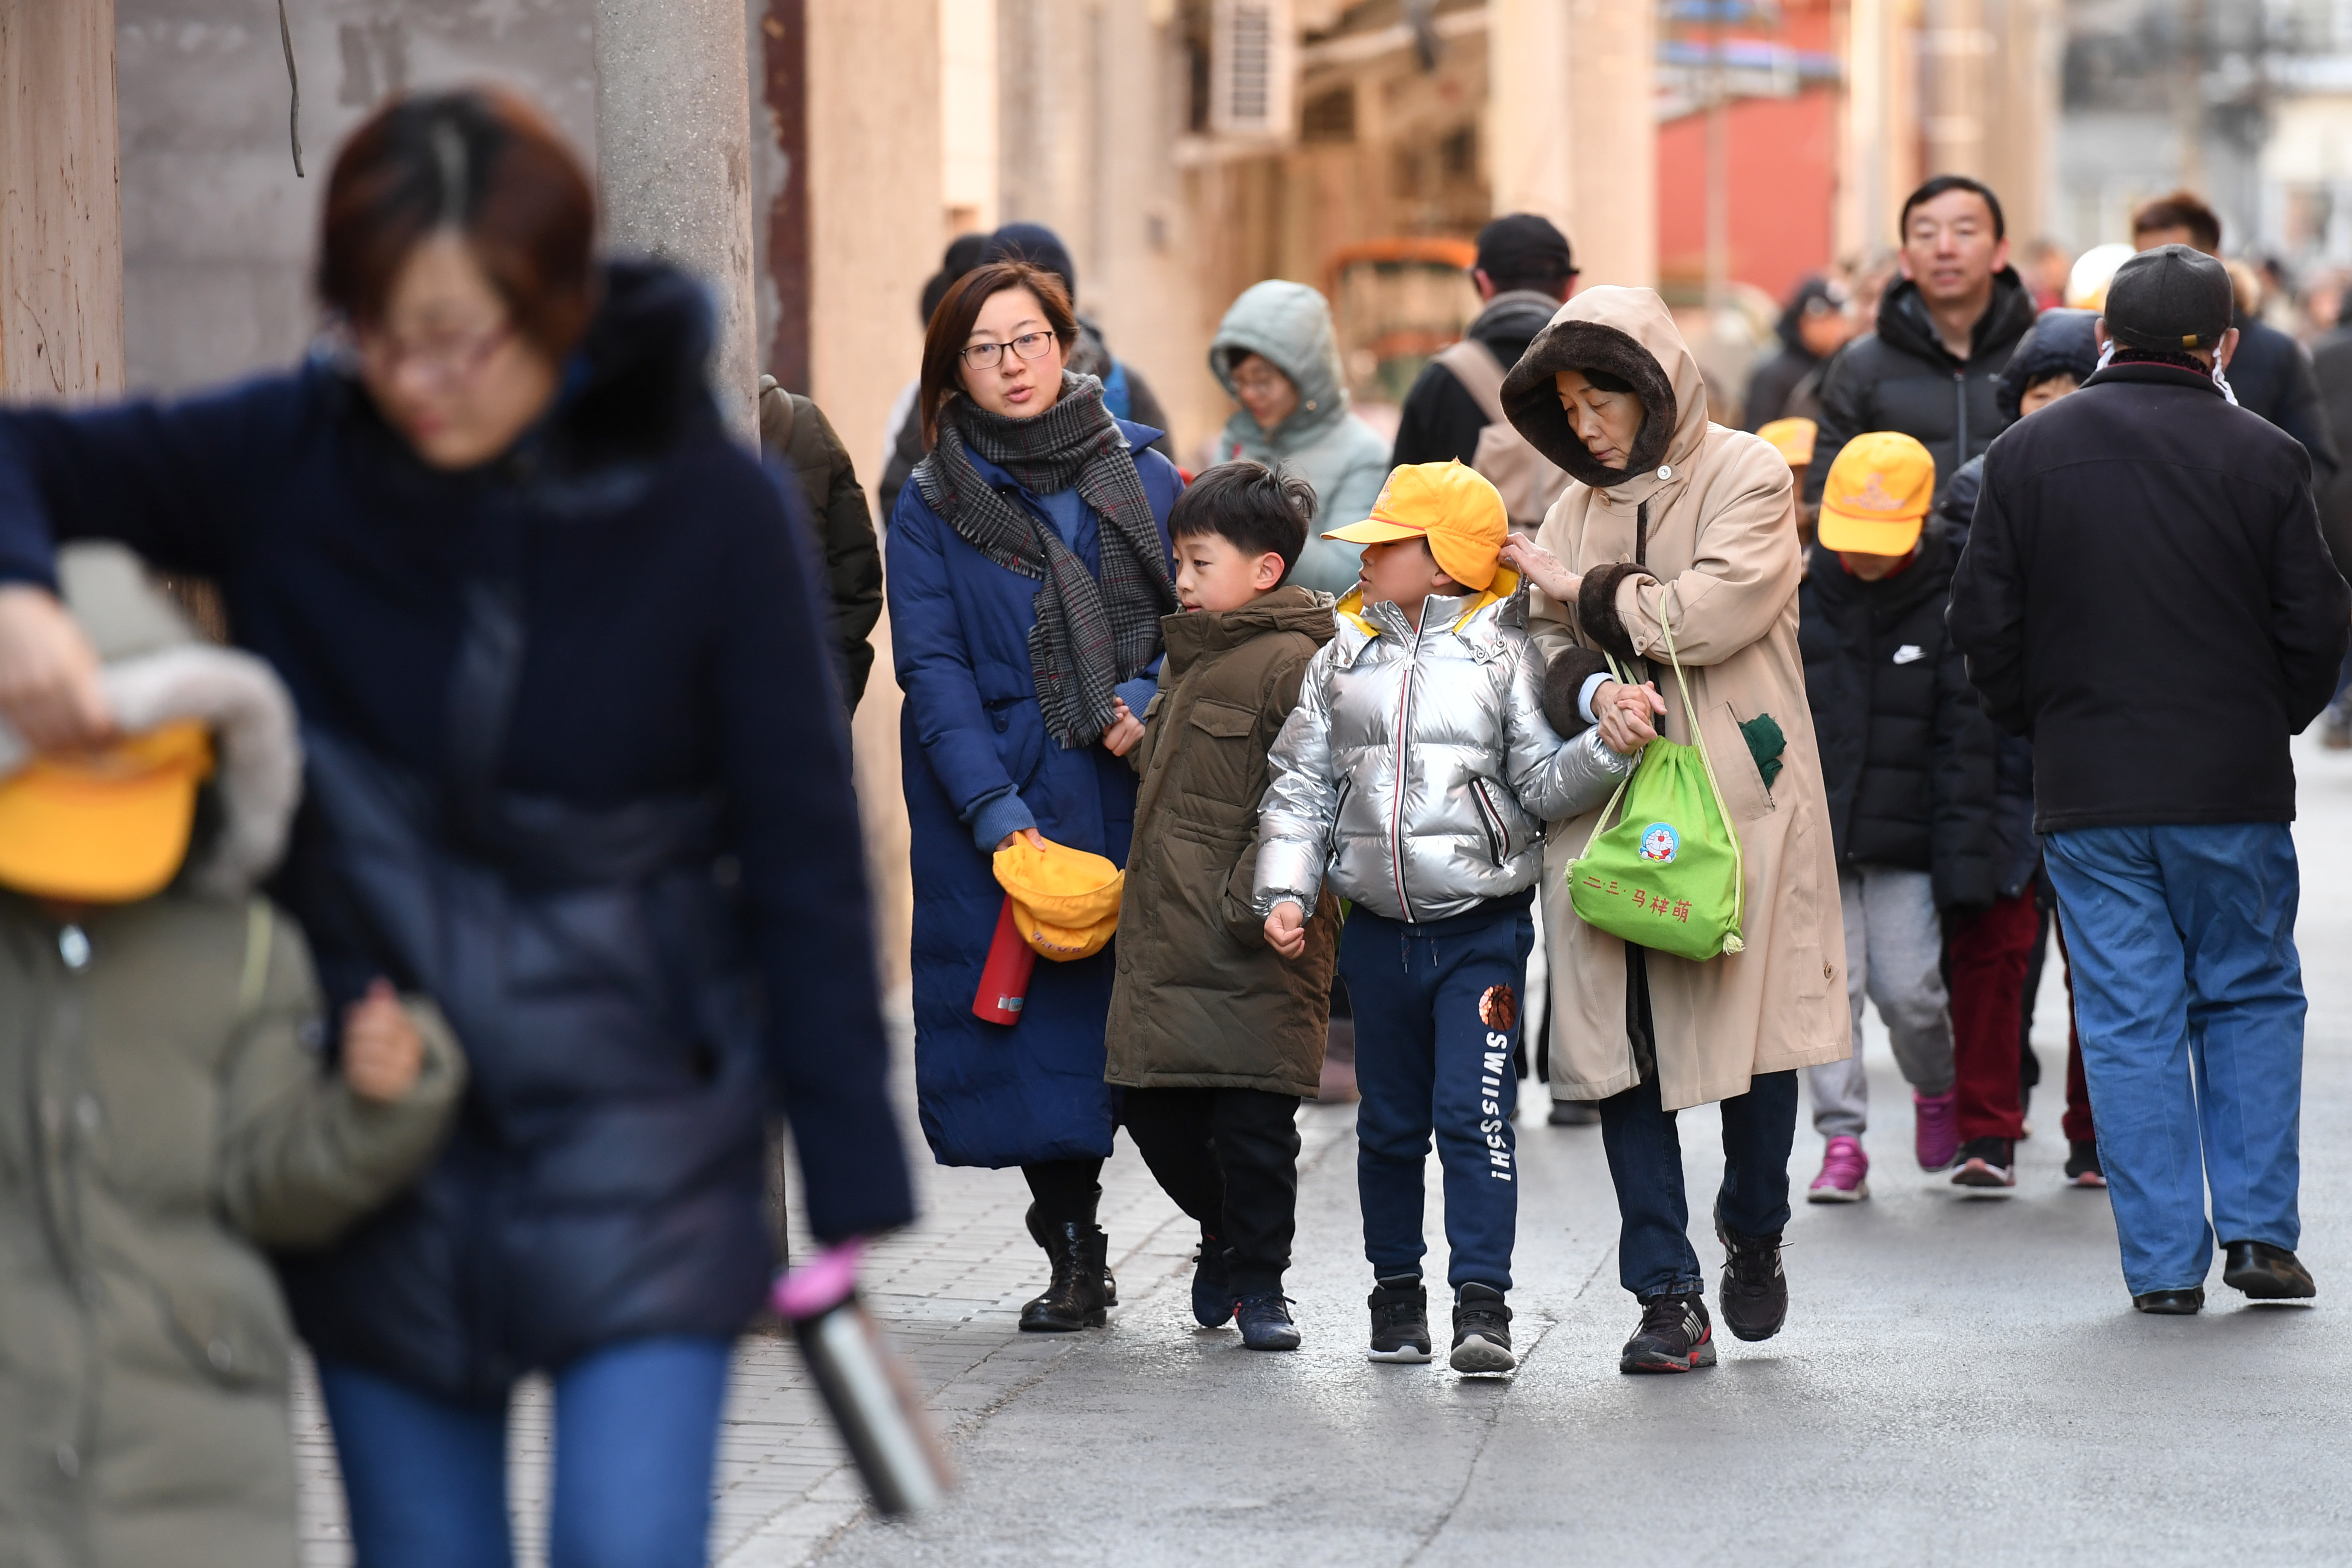 Parents and family members escort their children just outside the gates of an elementary school in Beijing following an attack on January 8, 2019. (GREG BAKER/AFP/Getty Images)